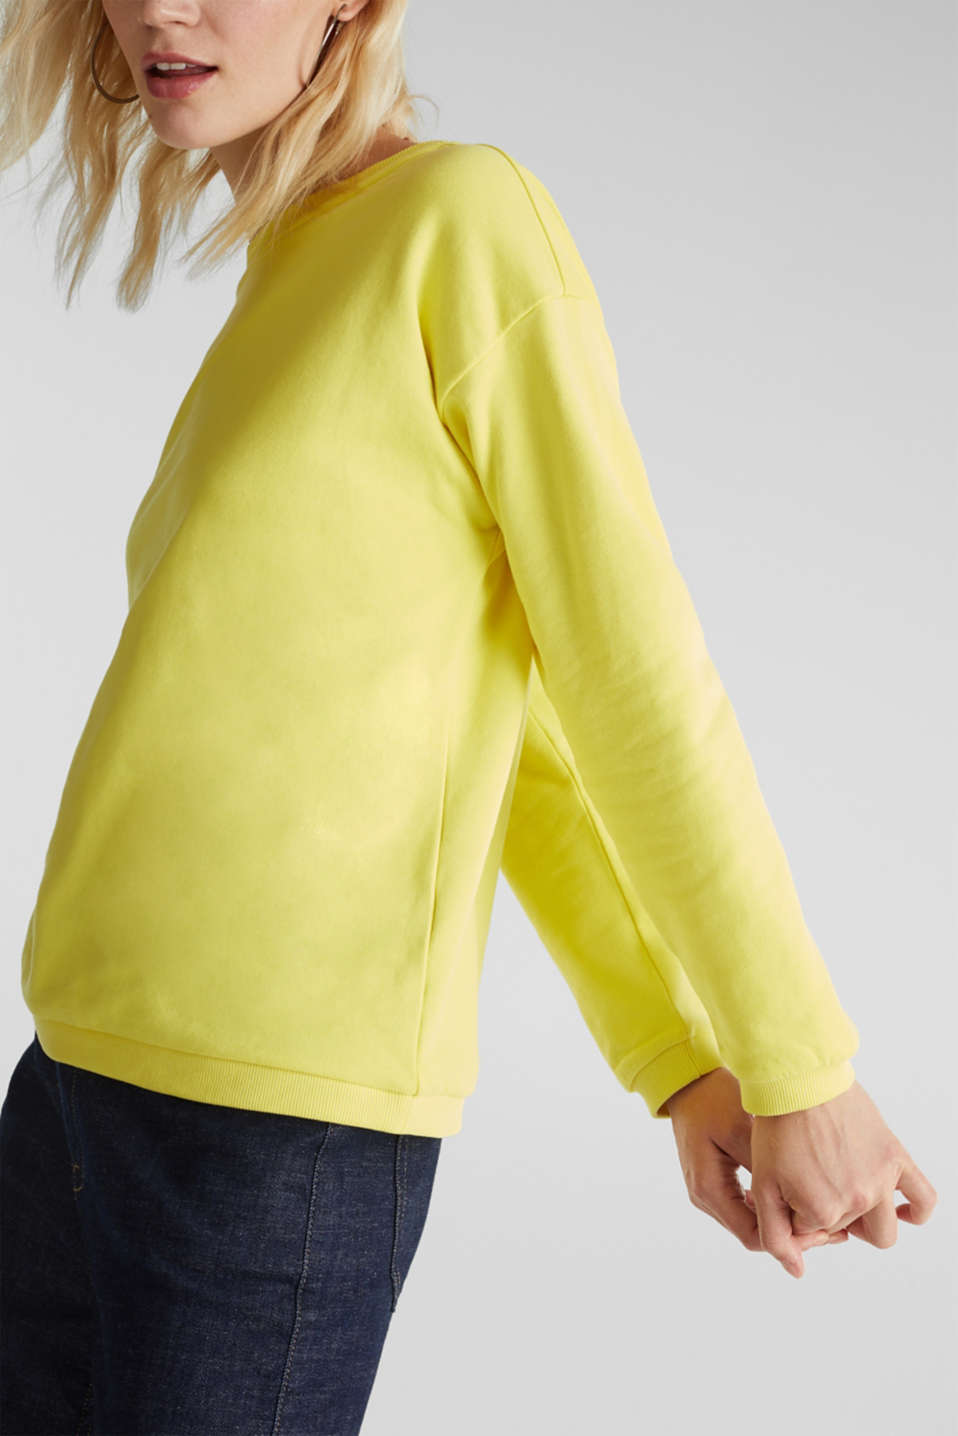 Sweatshirt with a back neckline, BRIGHT YELLOW, detail image number 2